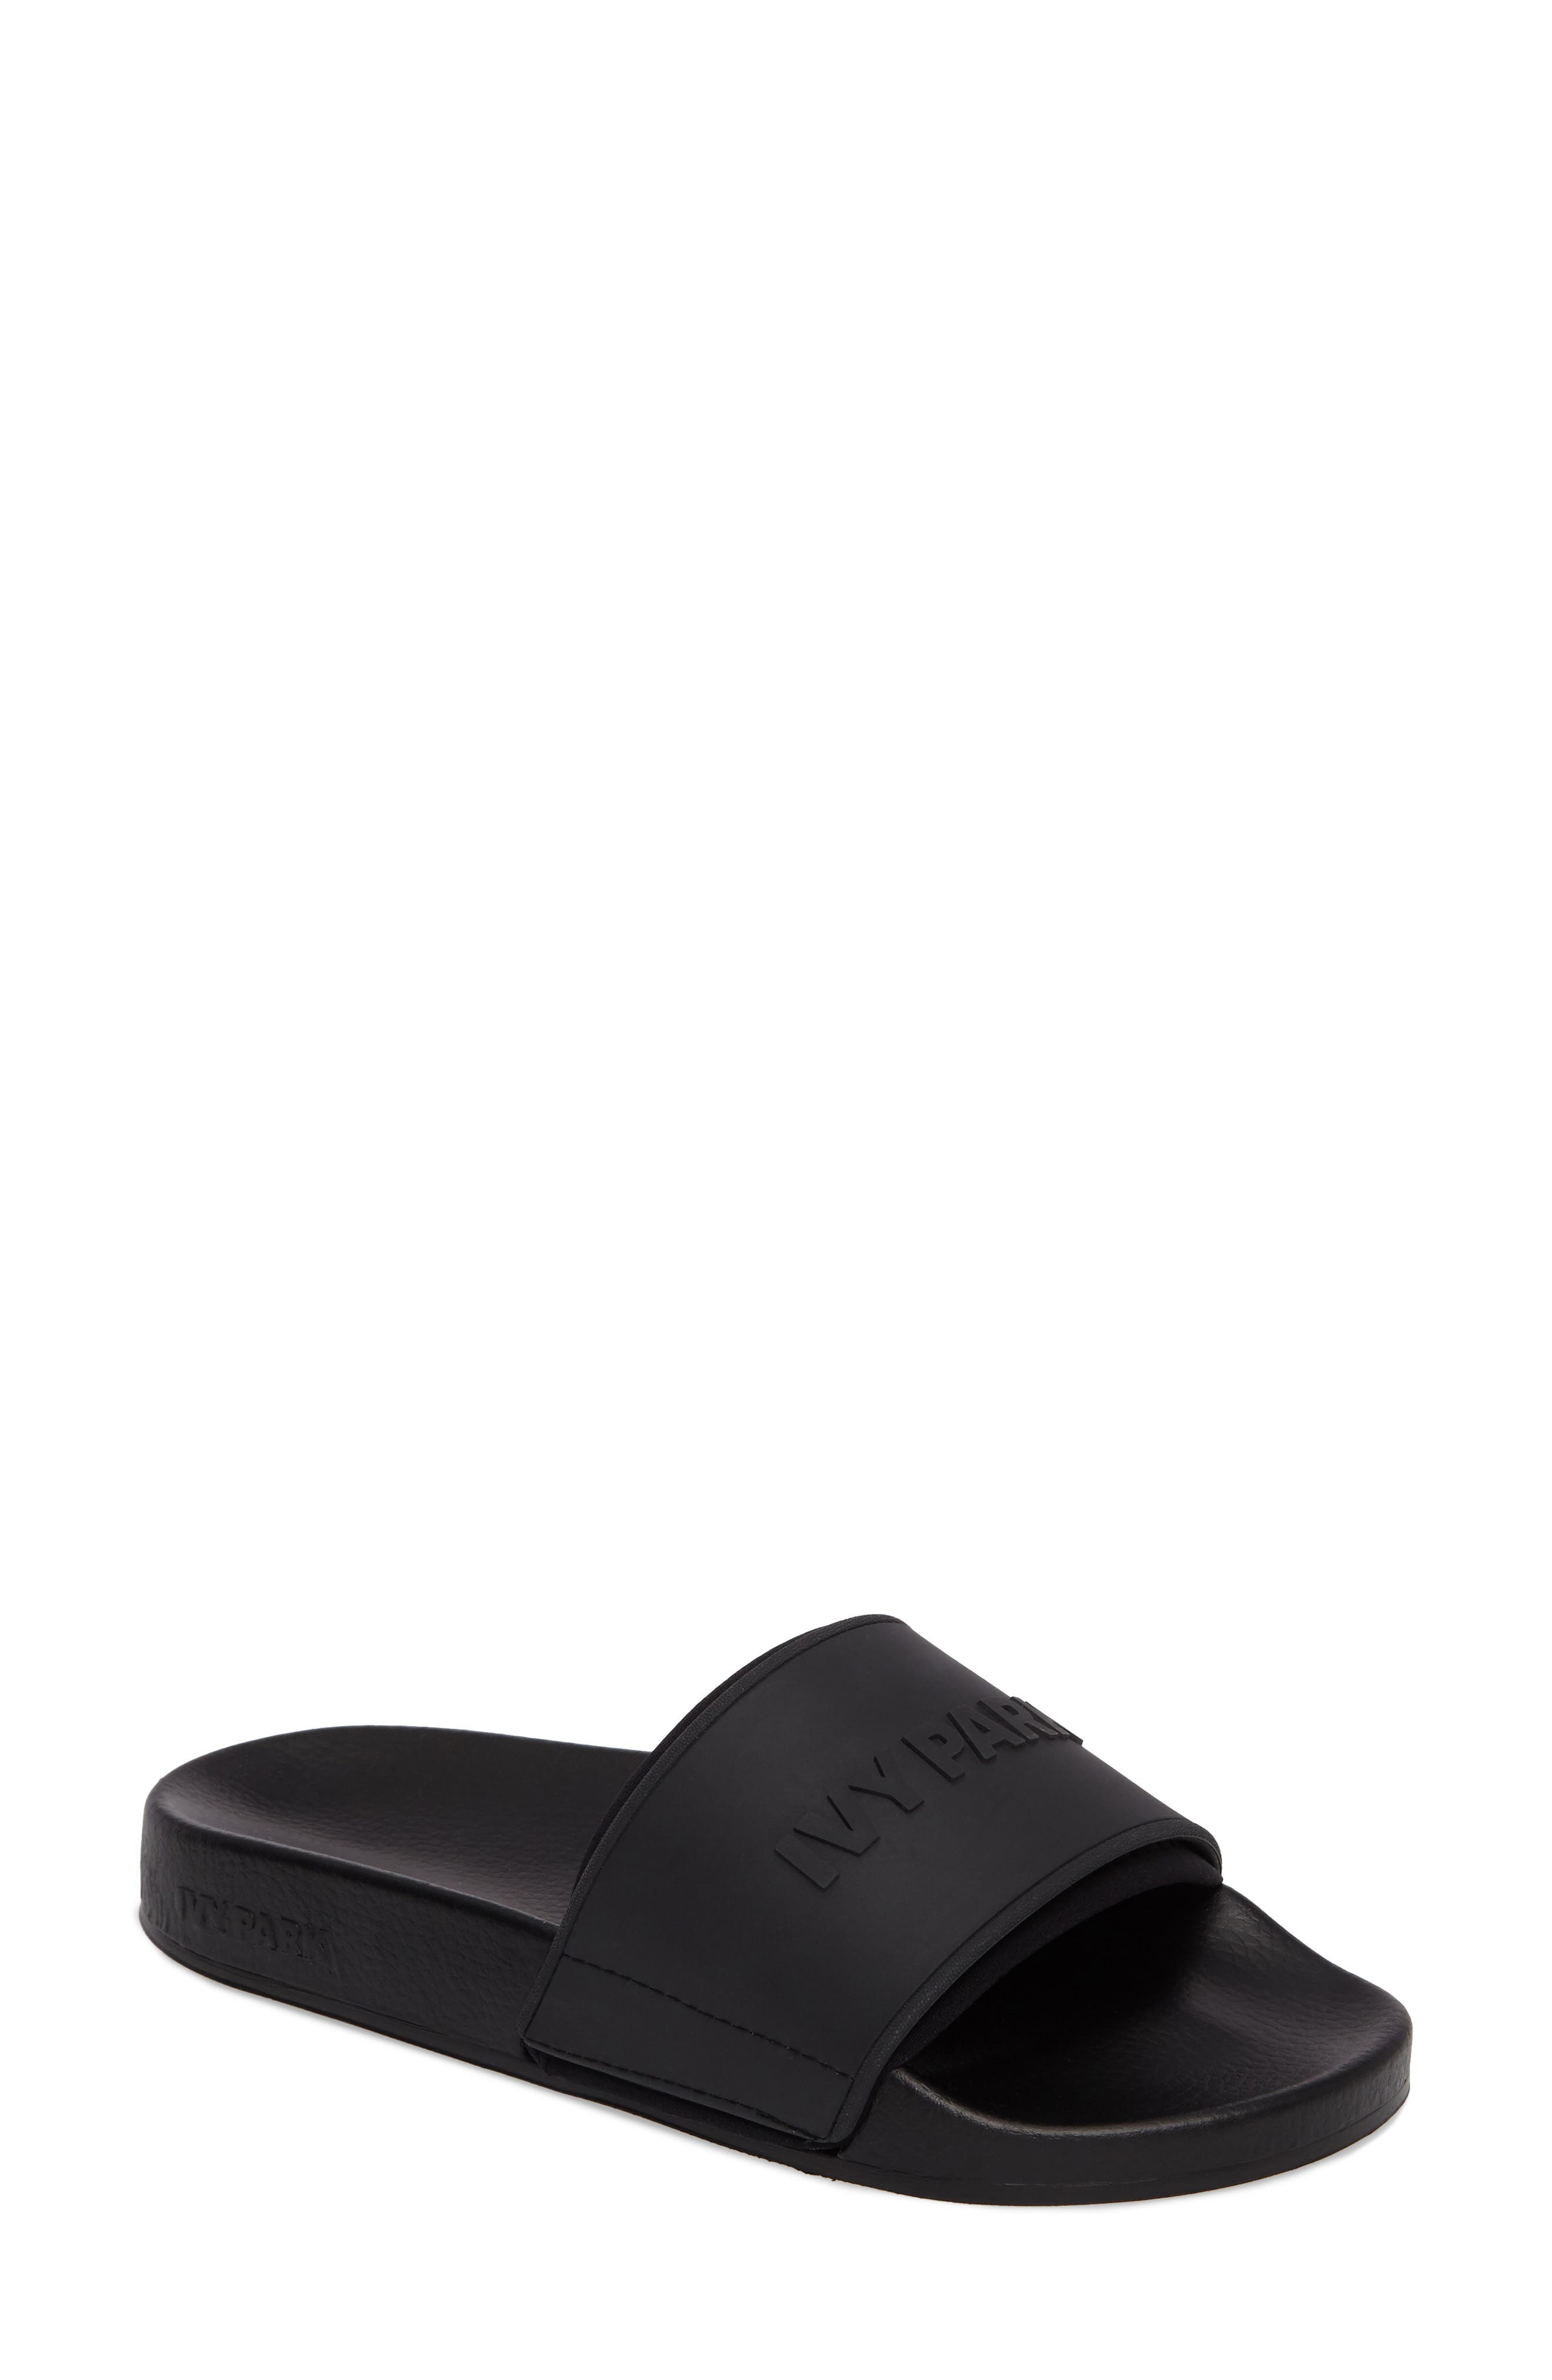 IVY PARK® Embossed Neoprene Lined Slide Sandal (Women)